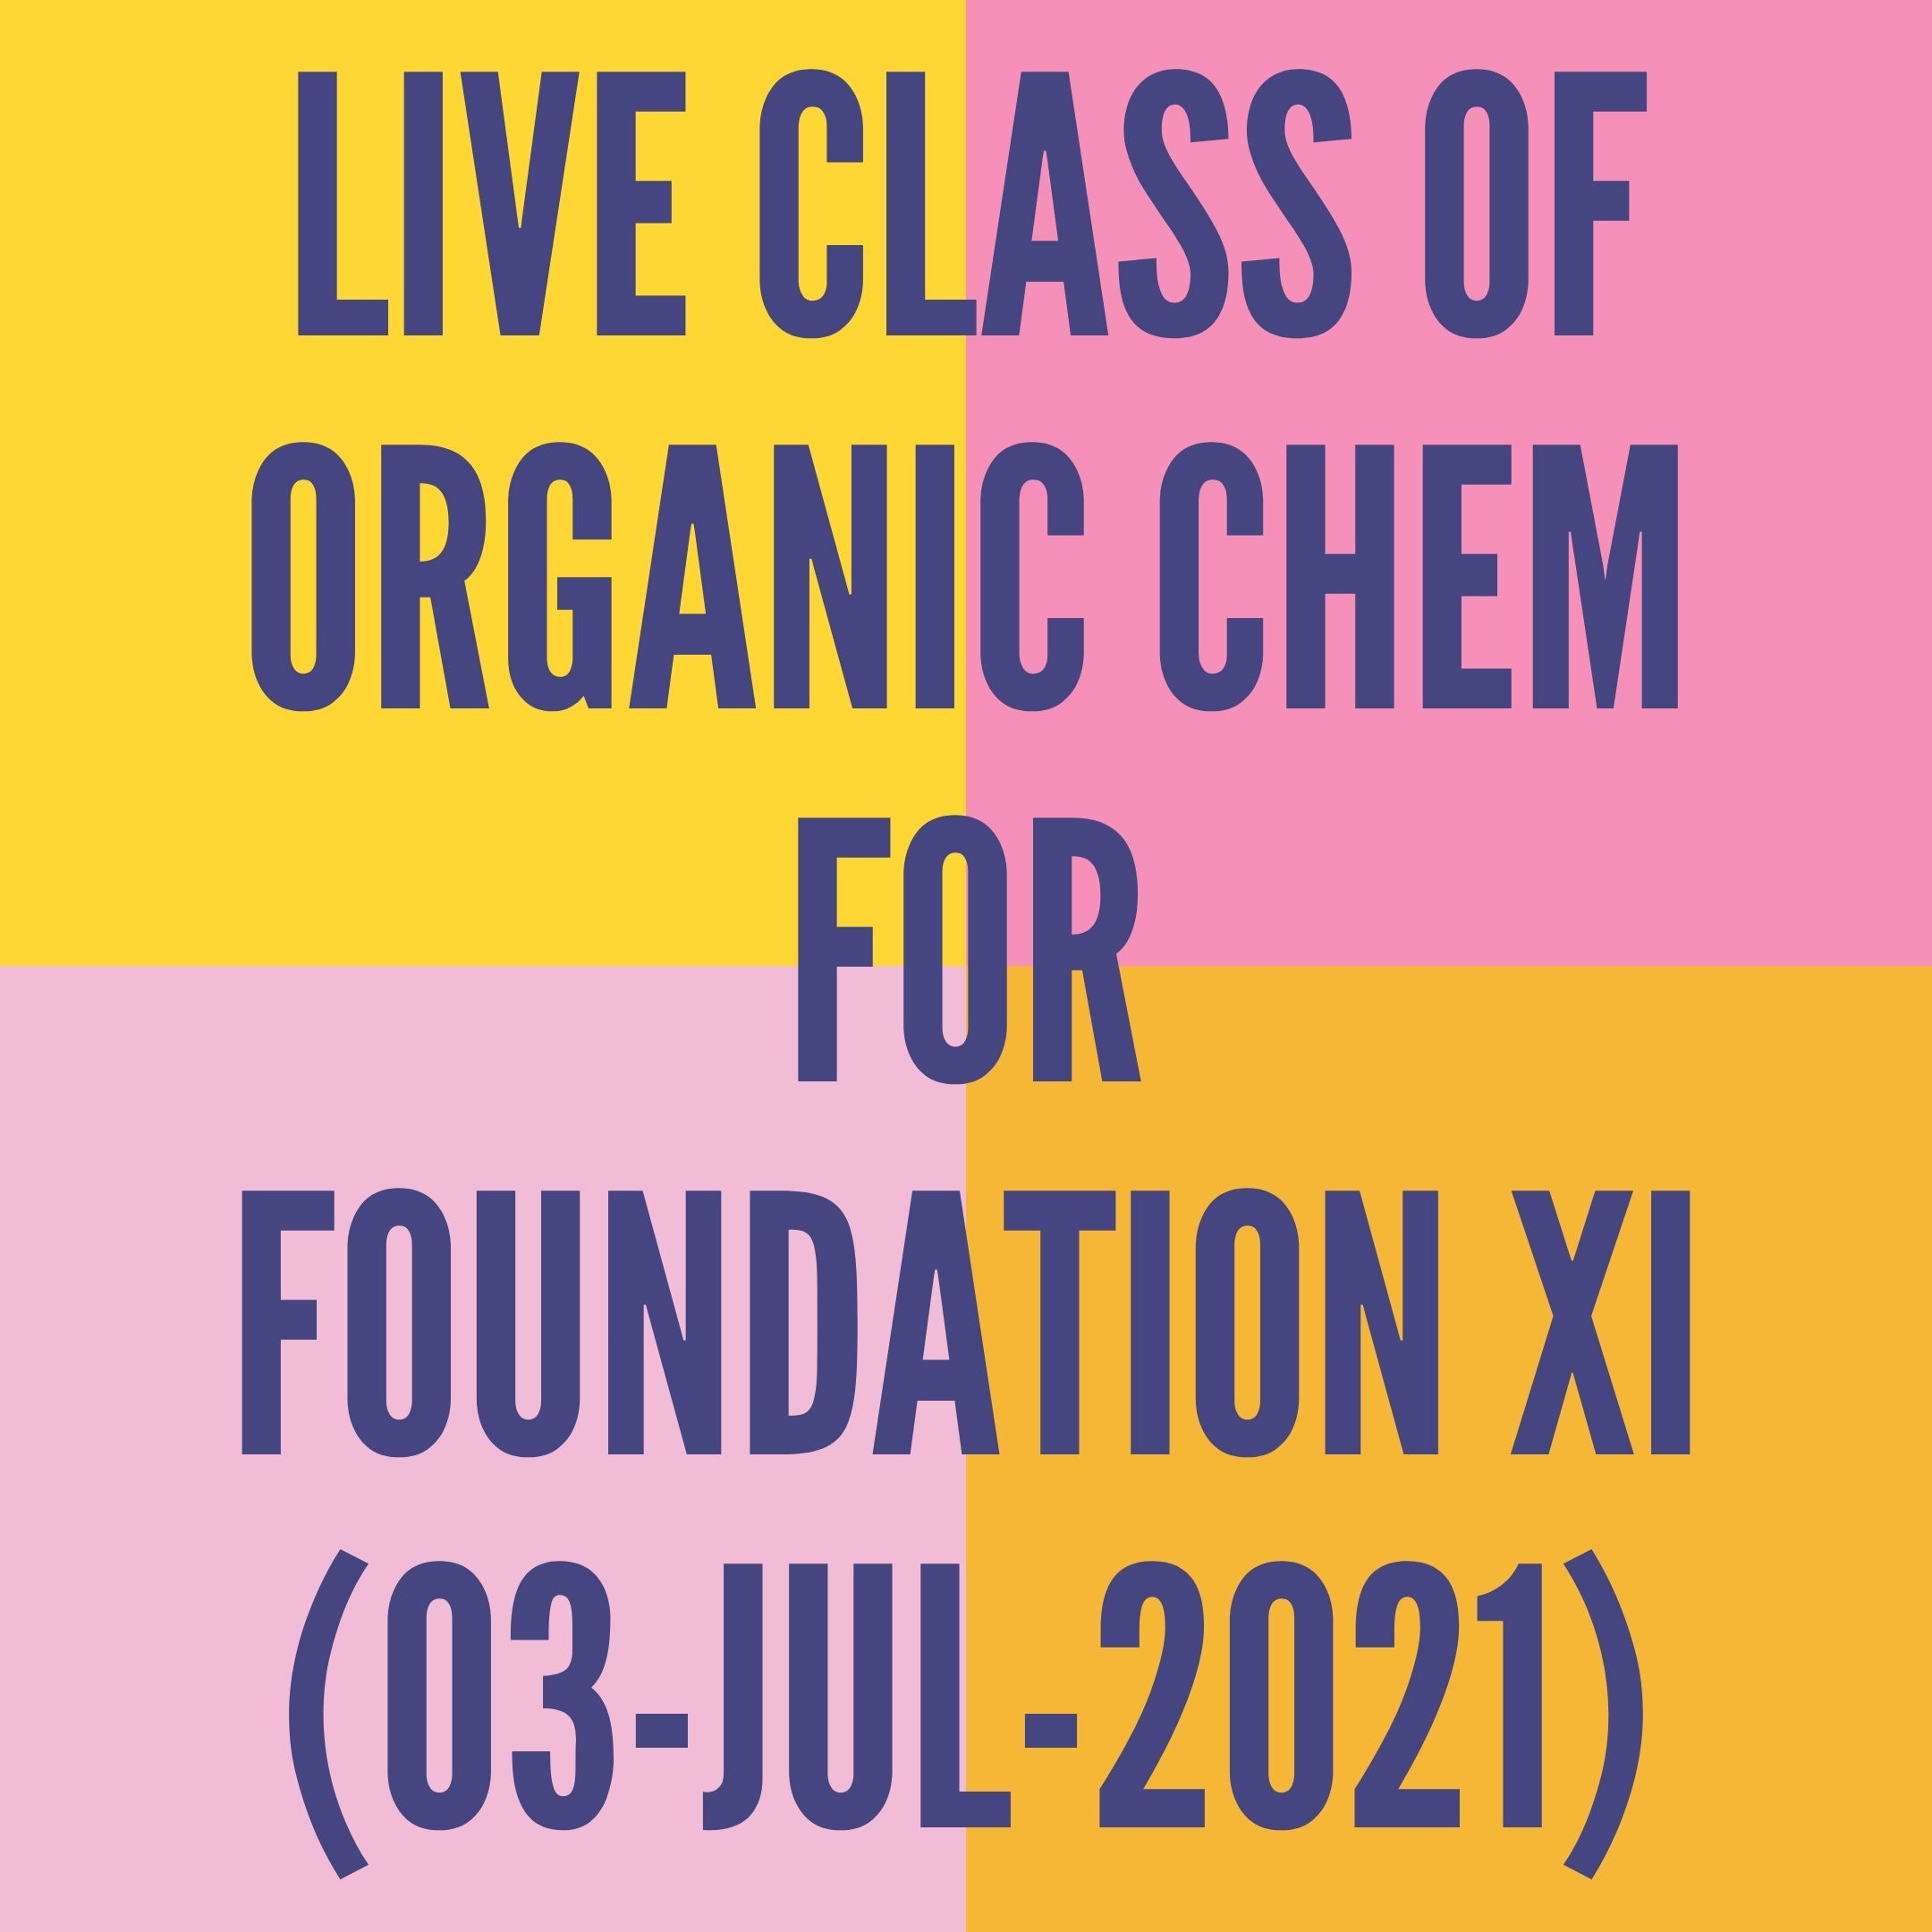 LIVE CLASS OF ORGANIC CHEMISTRY  FOR FOUNDATION XI (03-JUL-2021) NOMENCLATURE